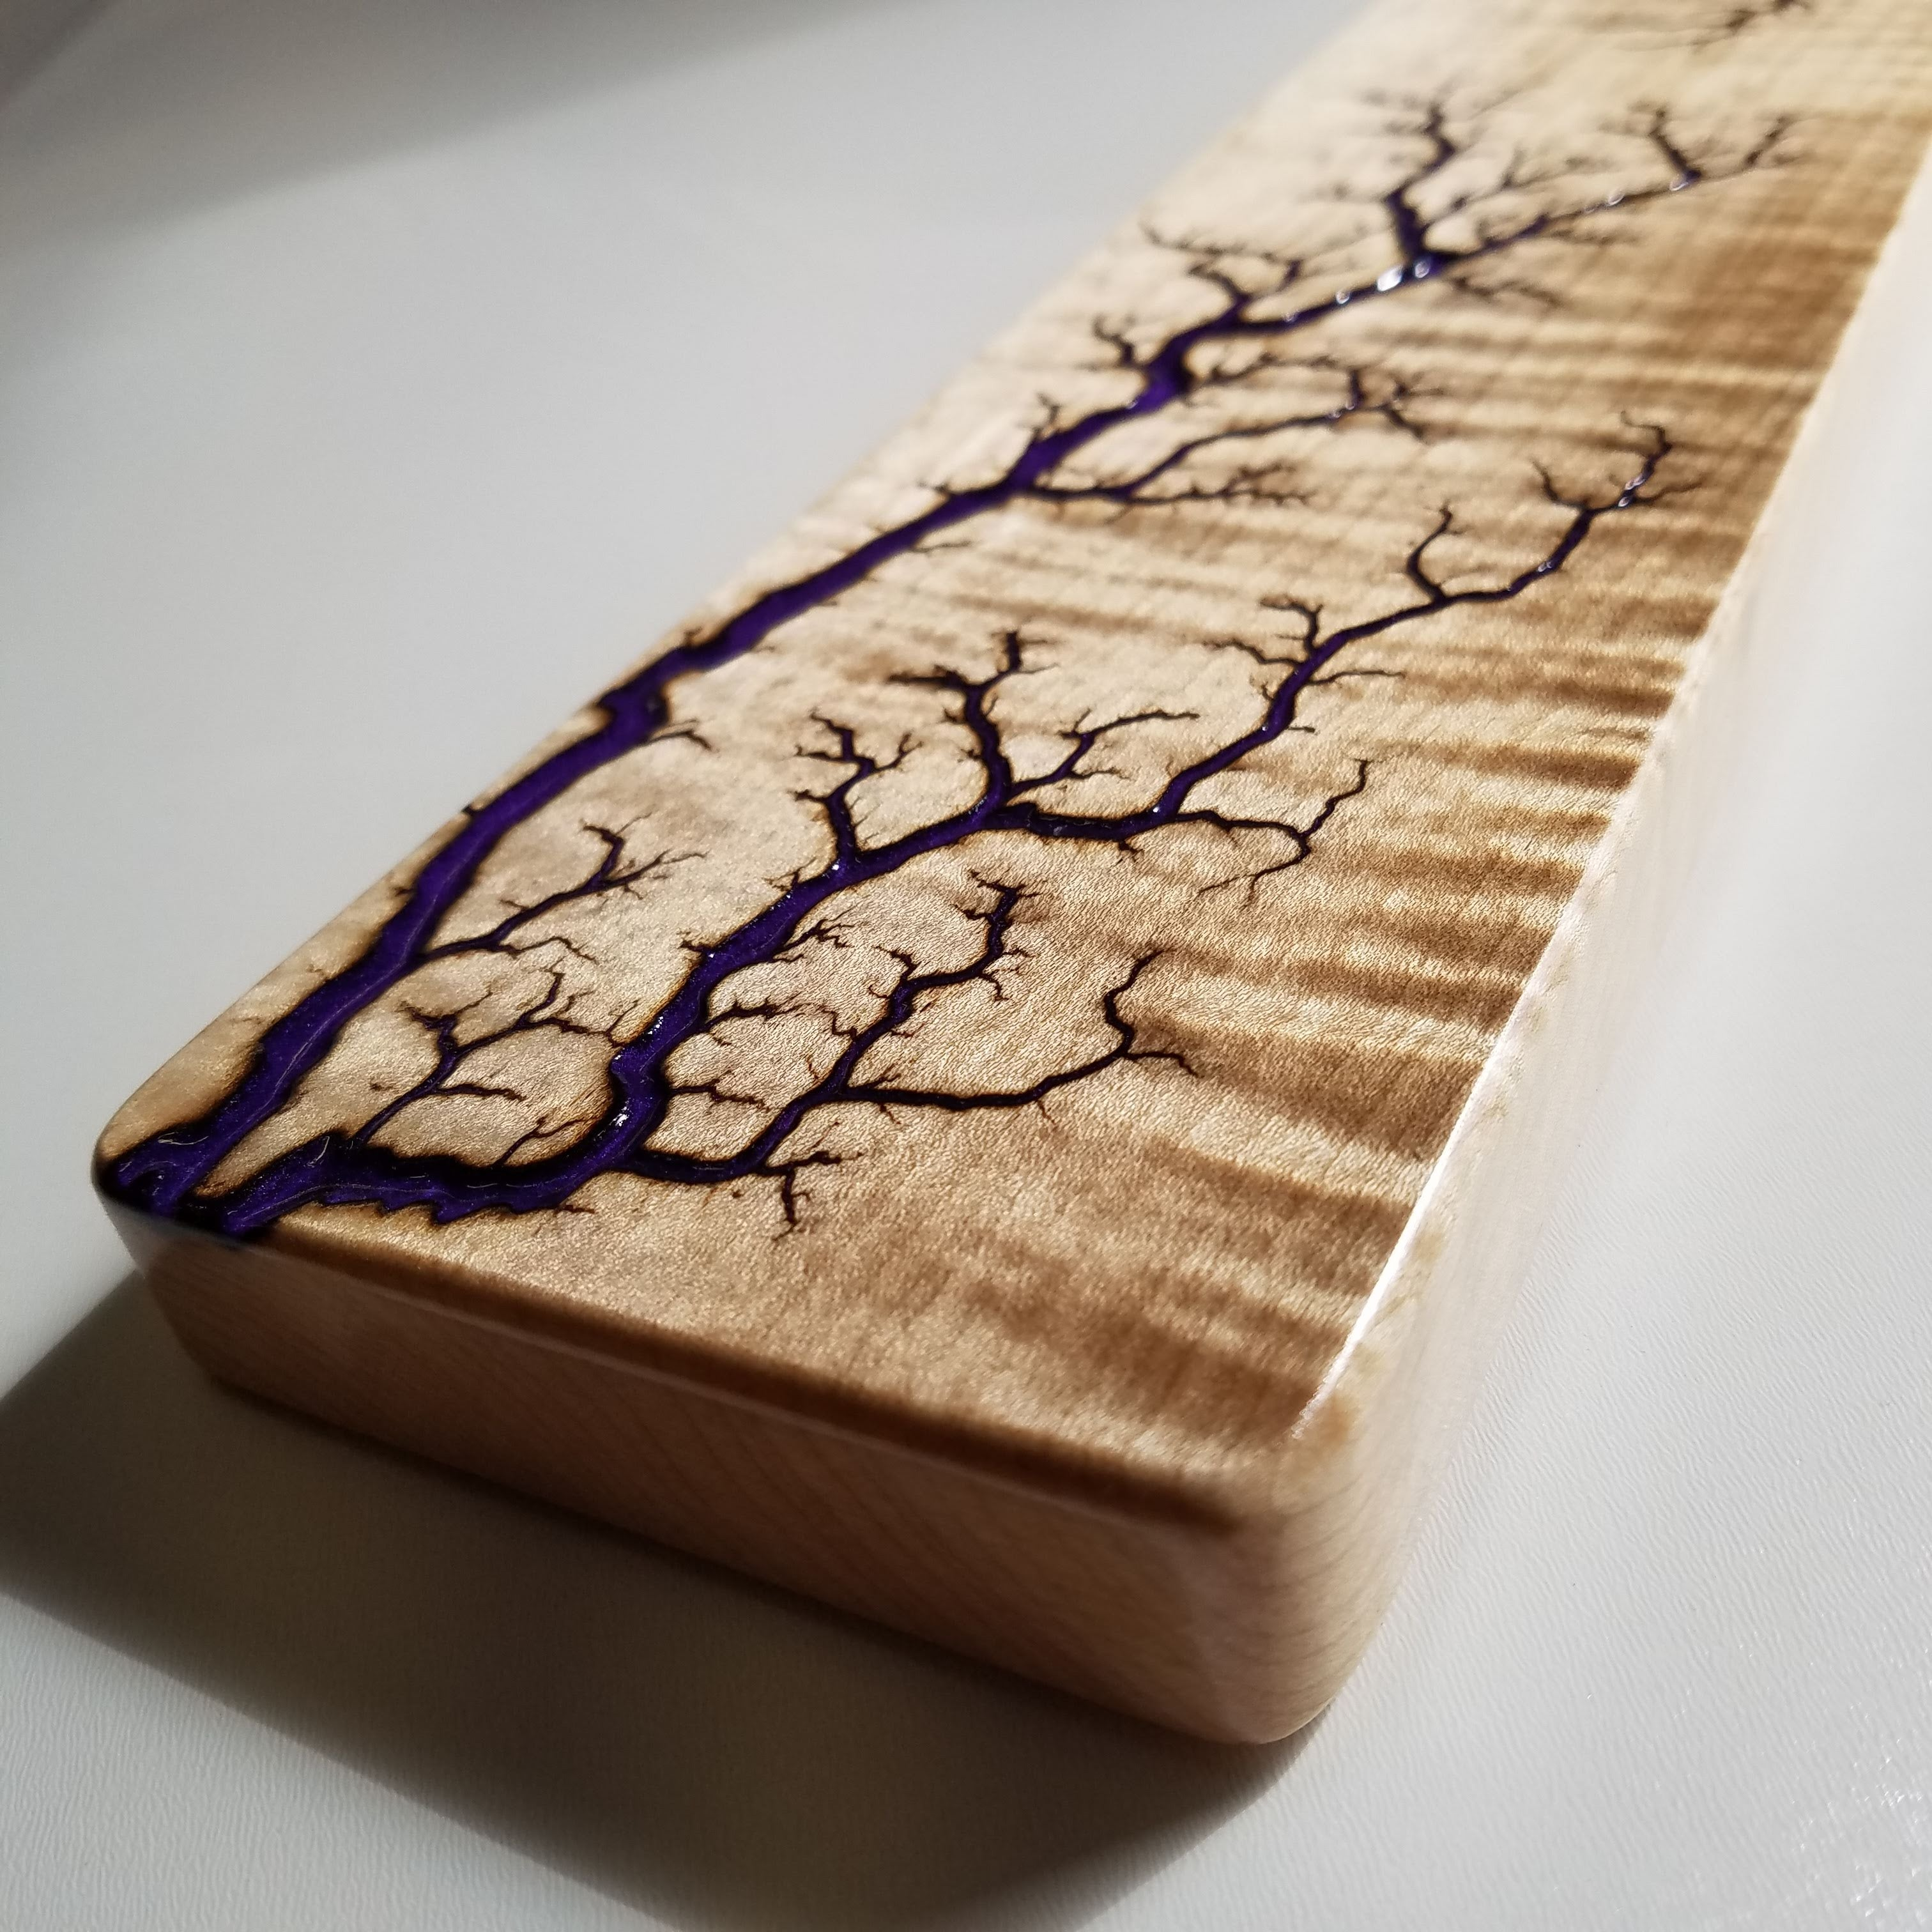 "CURLY MAPLE Wrist Rest (Full size 17.5"", Deep Purple Resin Inlay)"